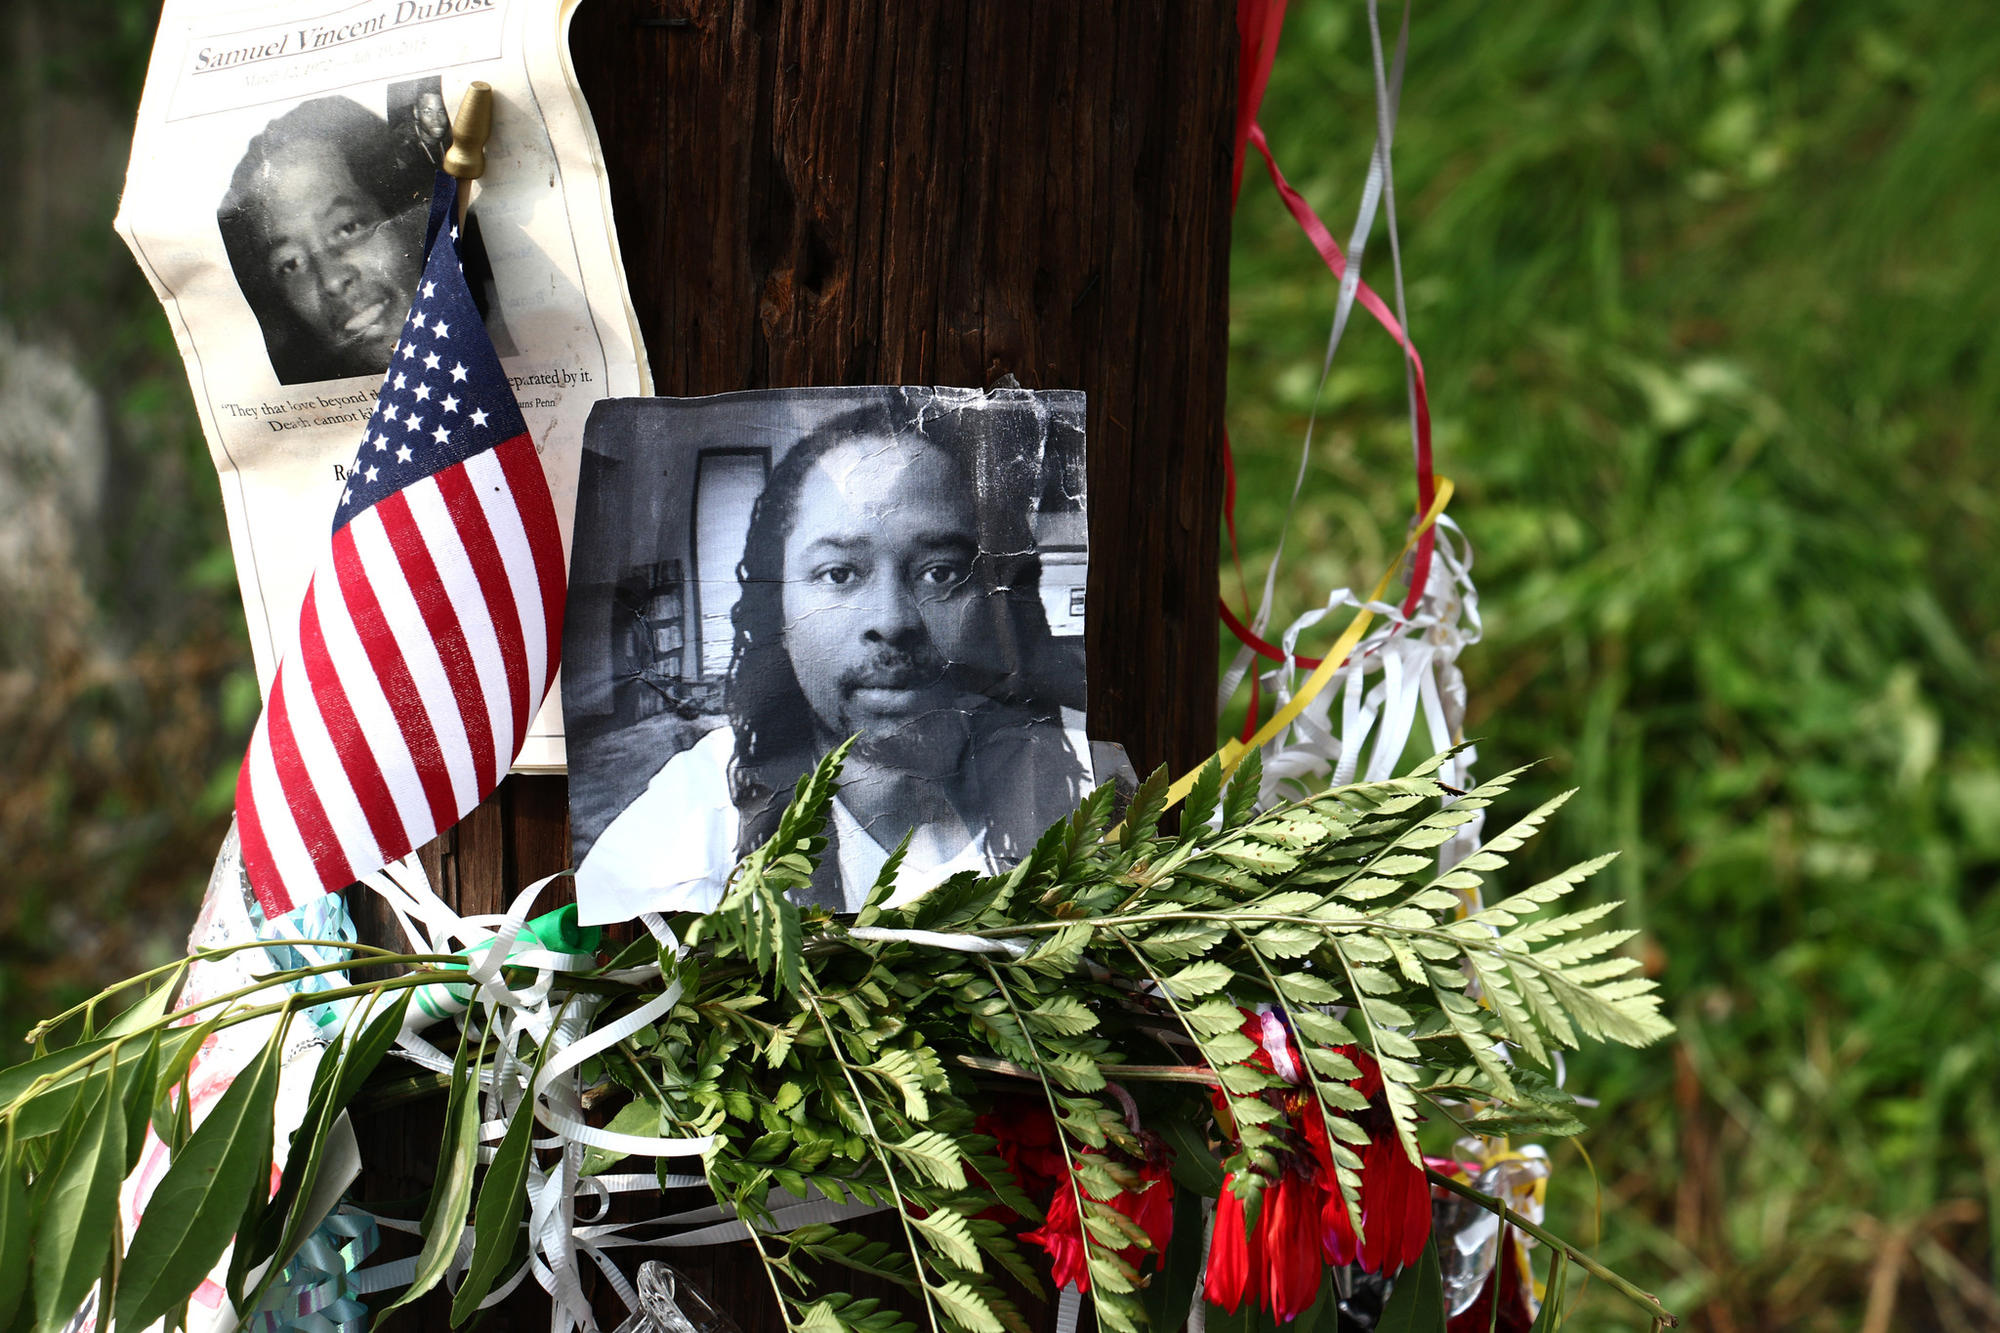 In this July 29, 2015, file photo, photos of Samuel DuBose hang on a pole at a memorial near where he was shot and killed by a University of Cincinnati police officer.